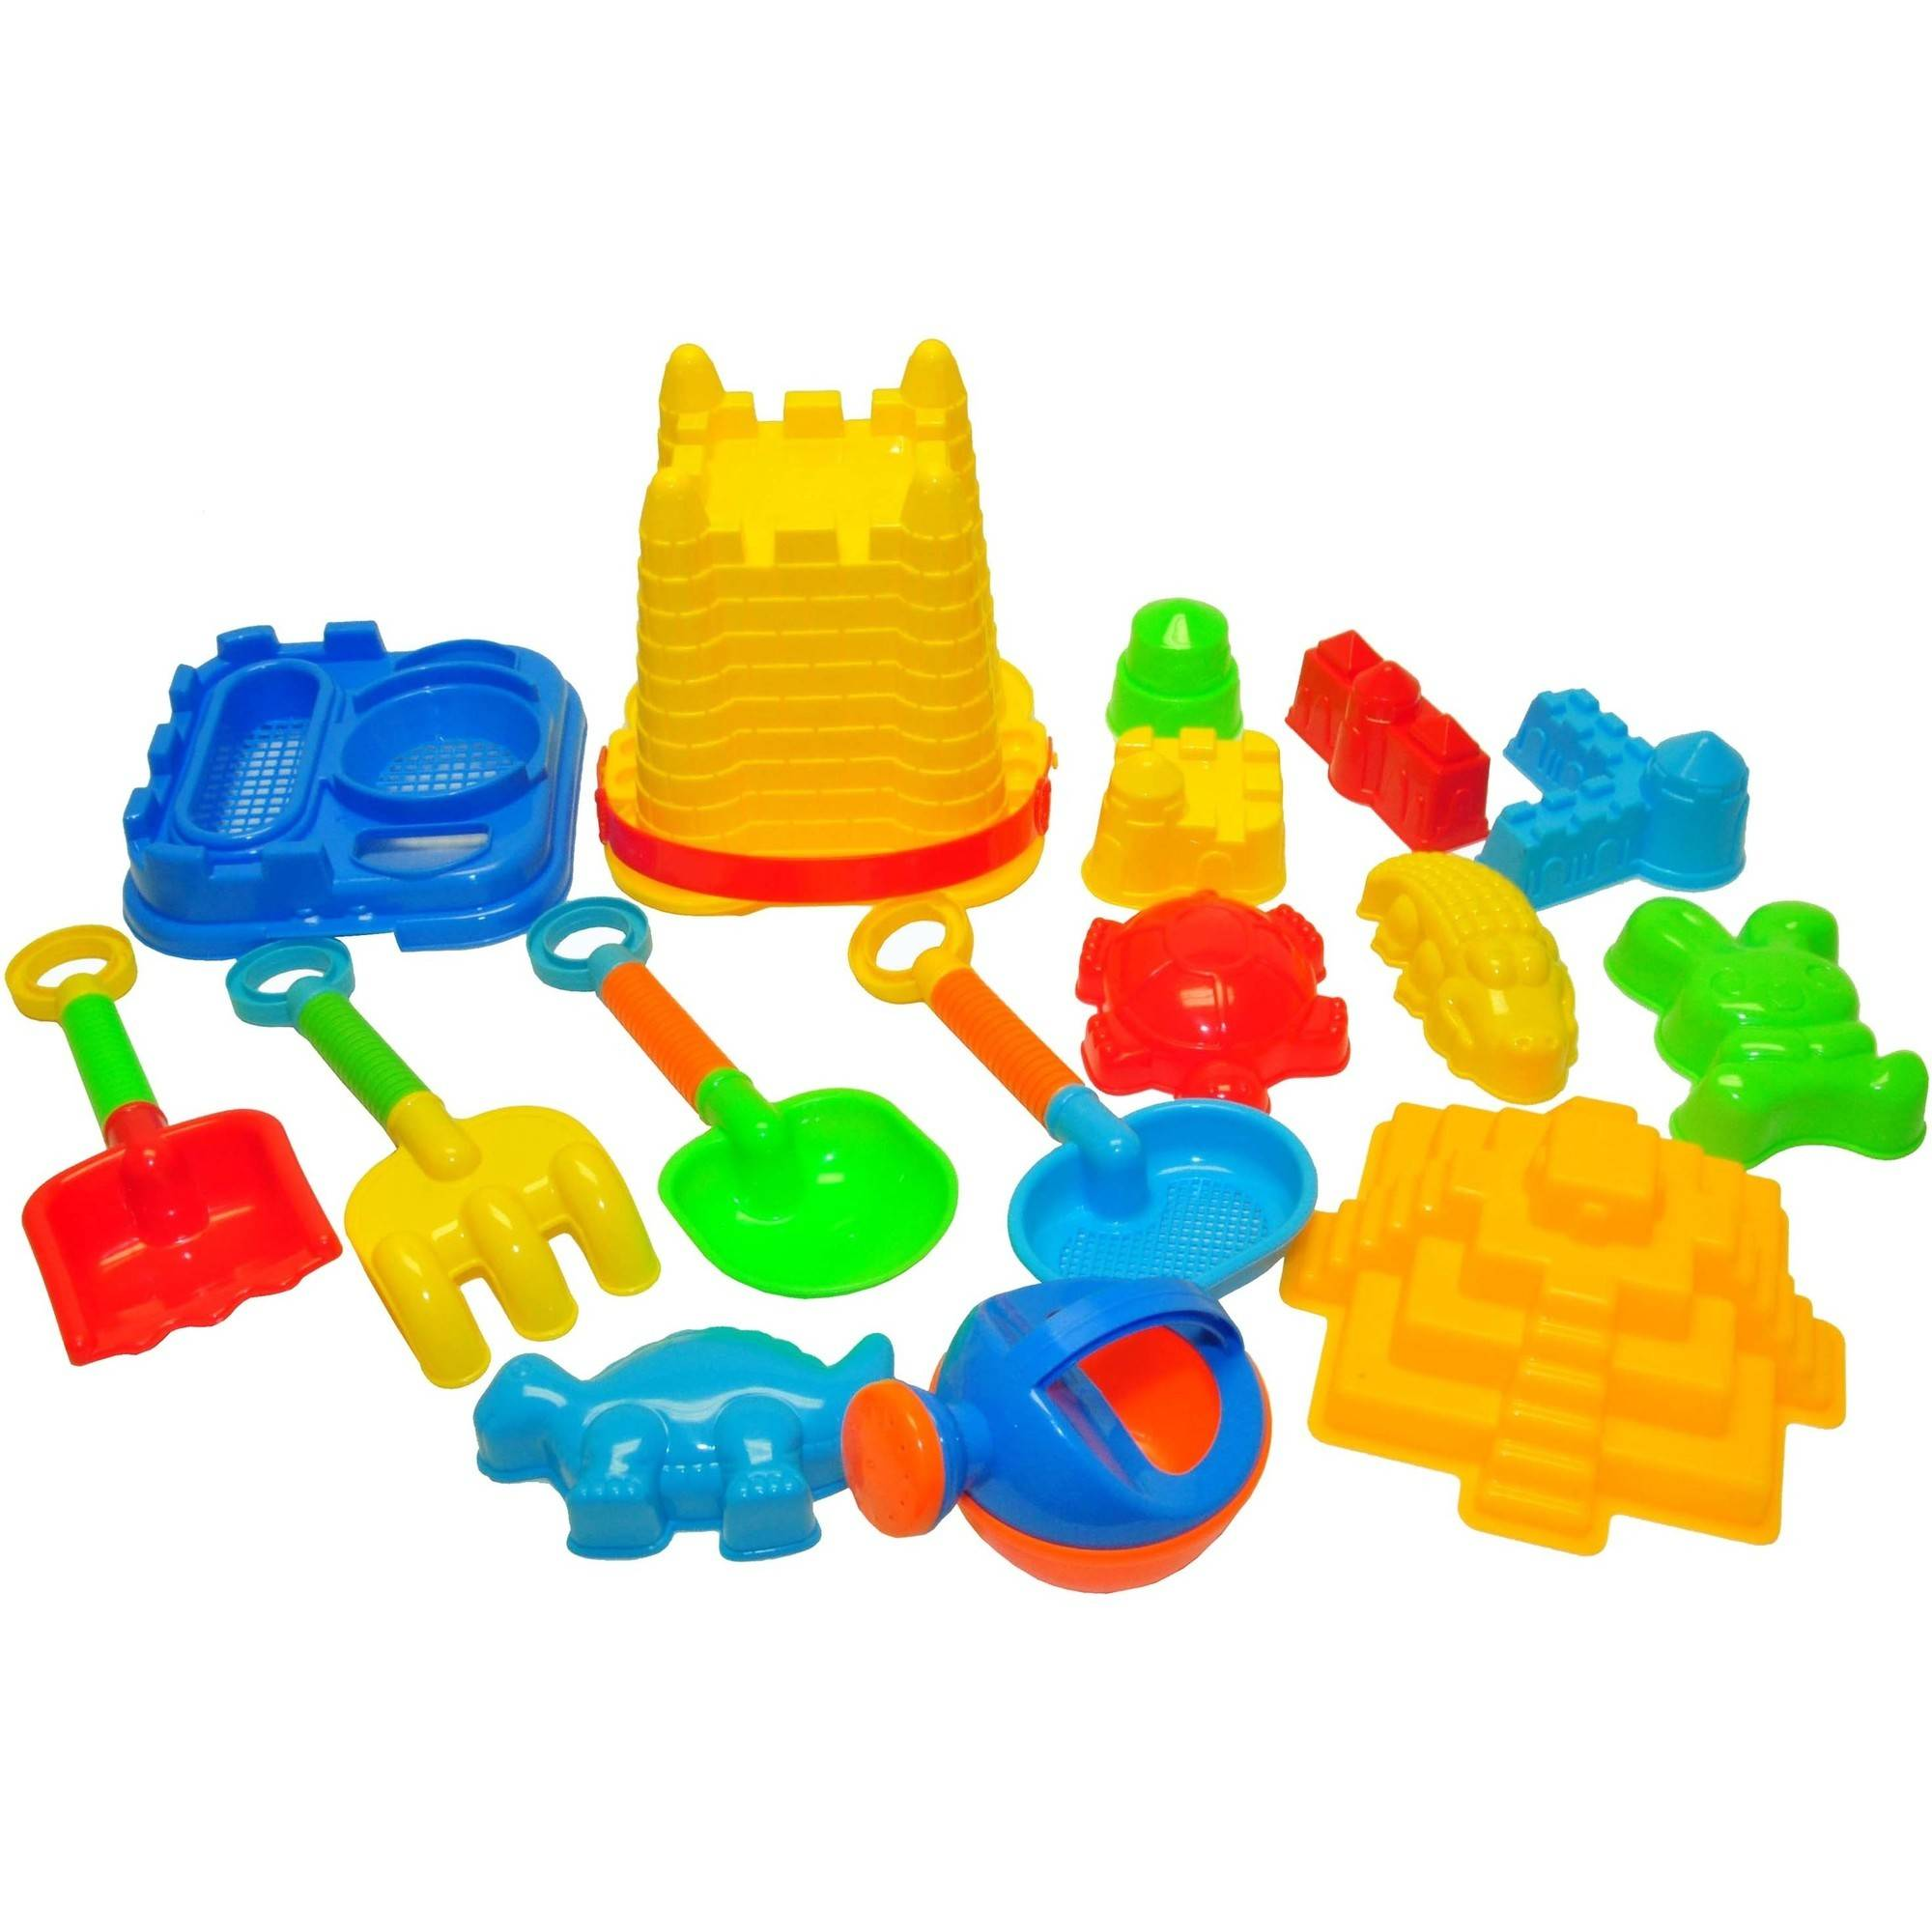 JustForKids Beach Toys For Kids with Reusable Mesh Bag Castle